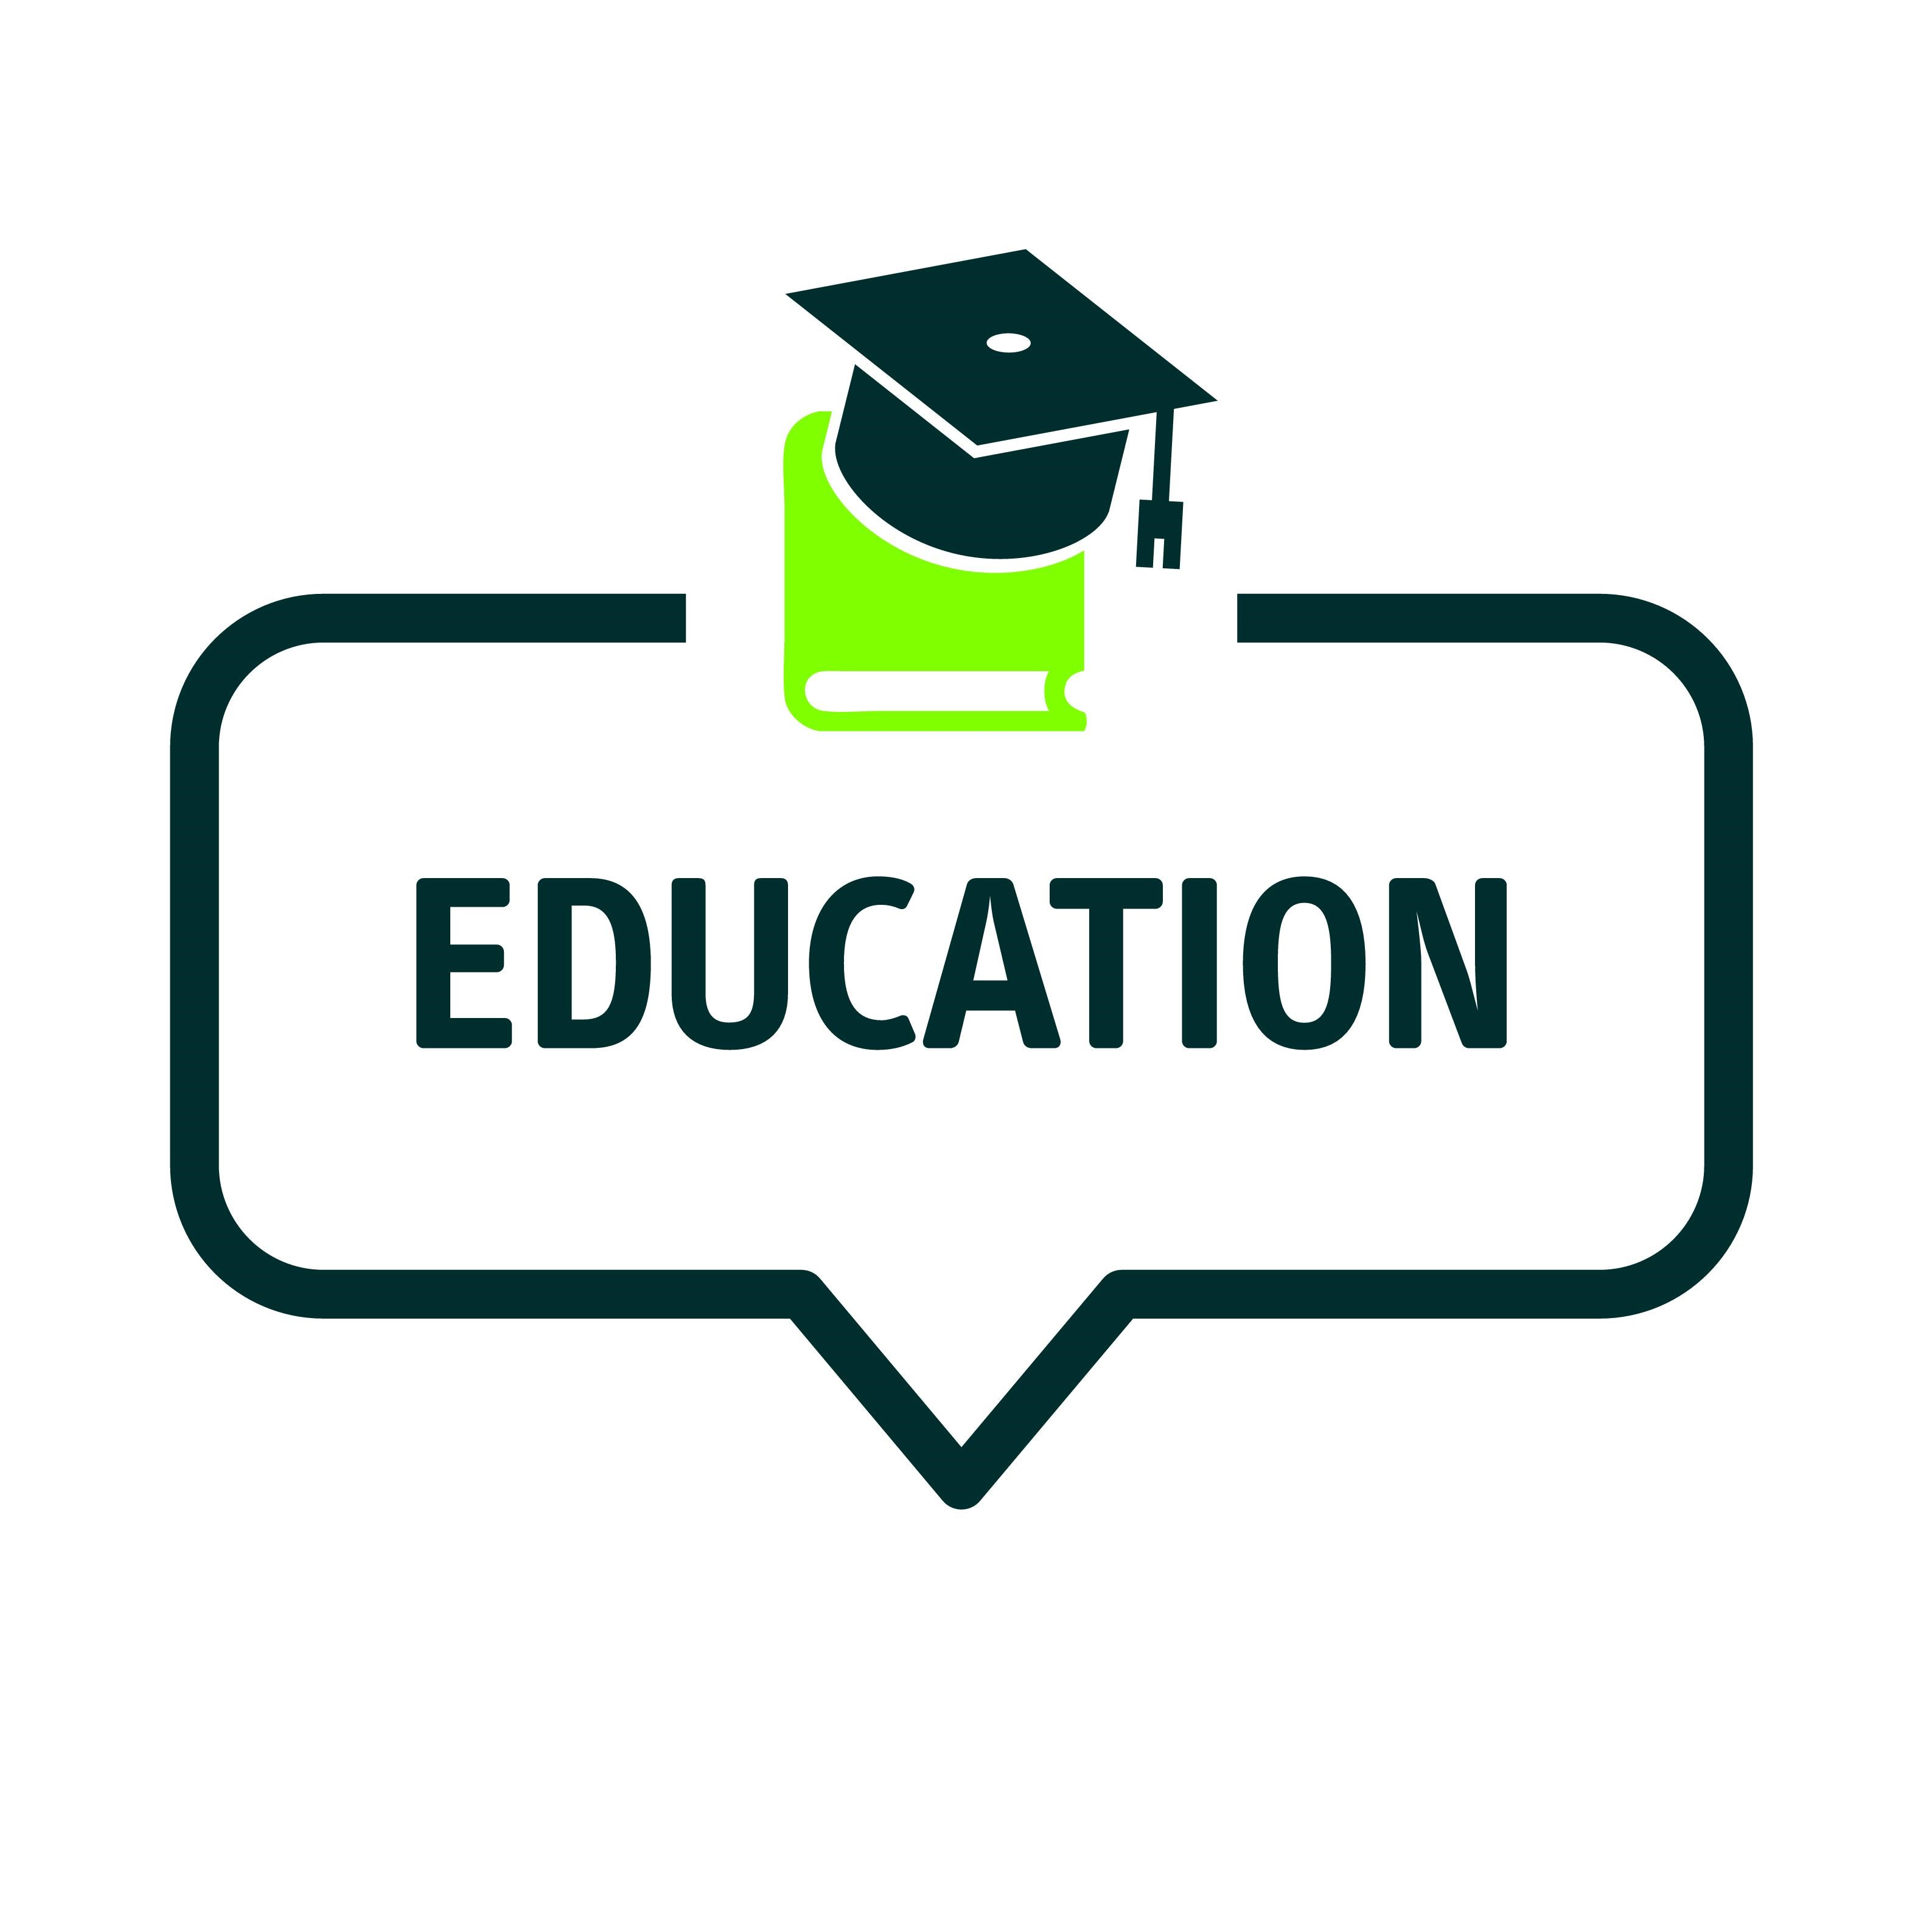 logo with the wording 'Education'